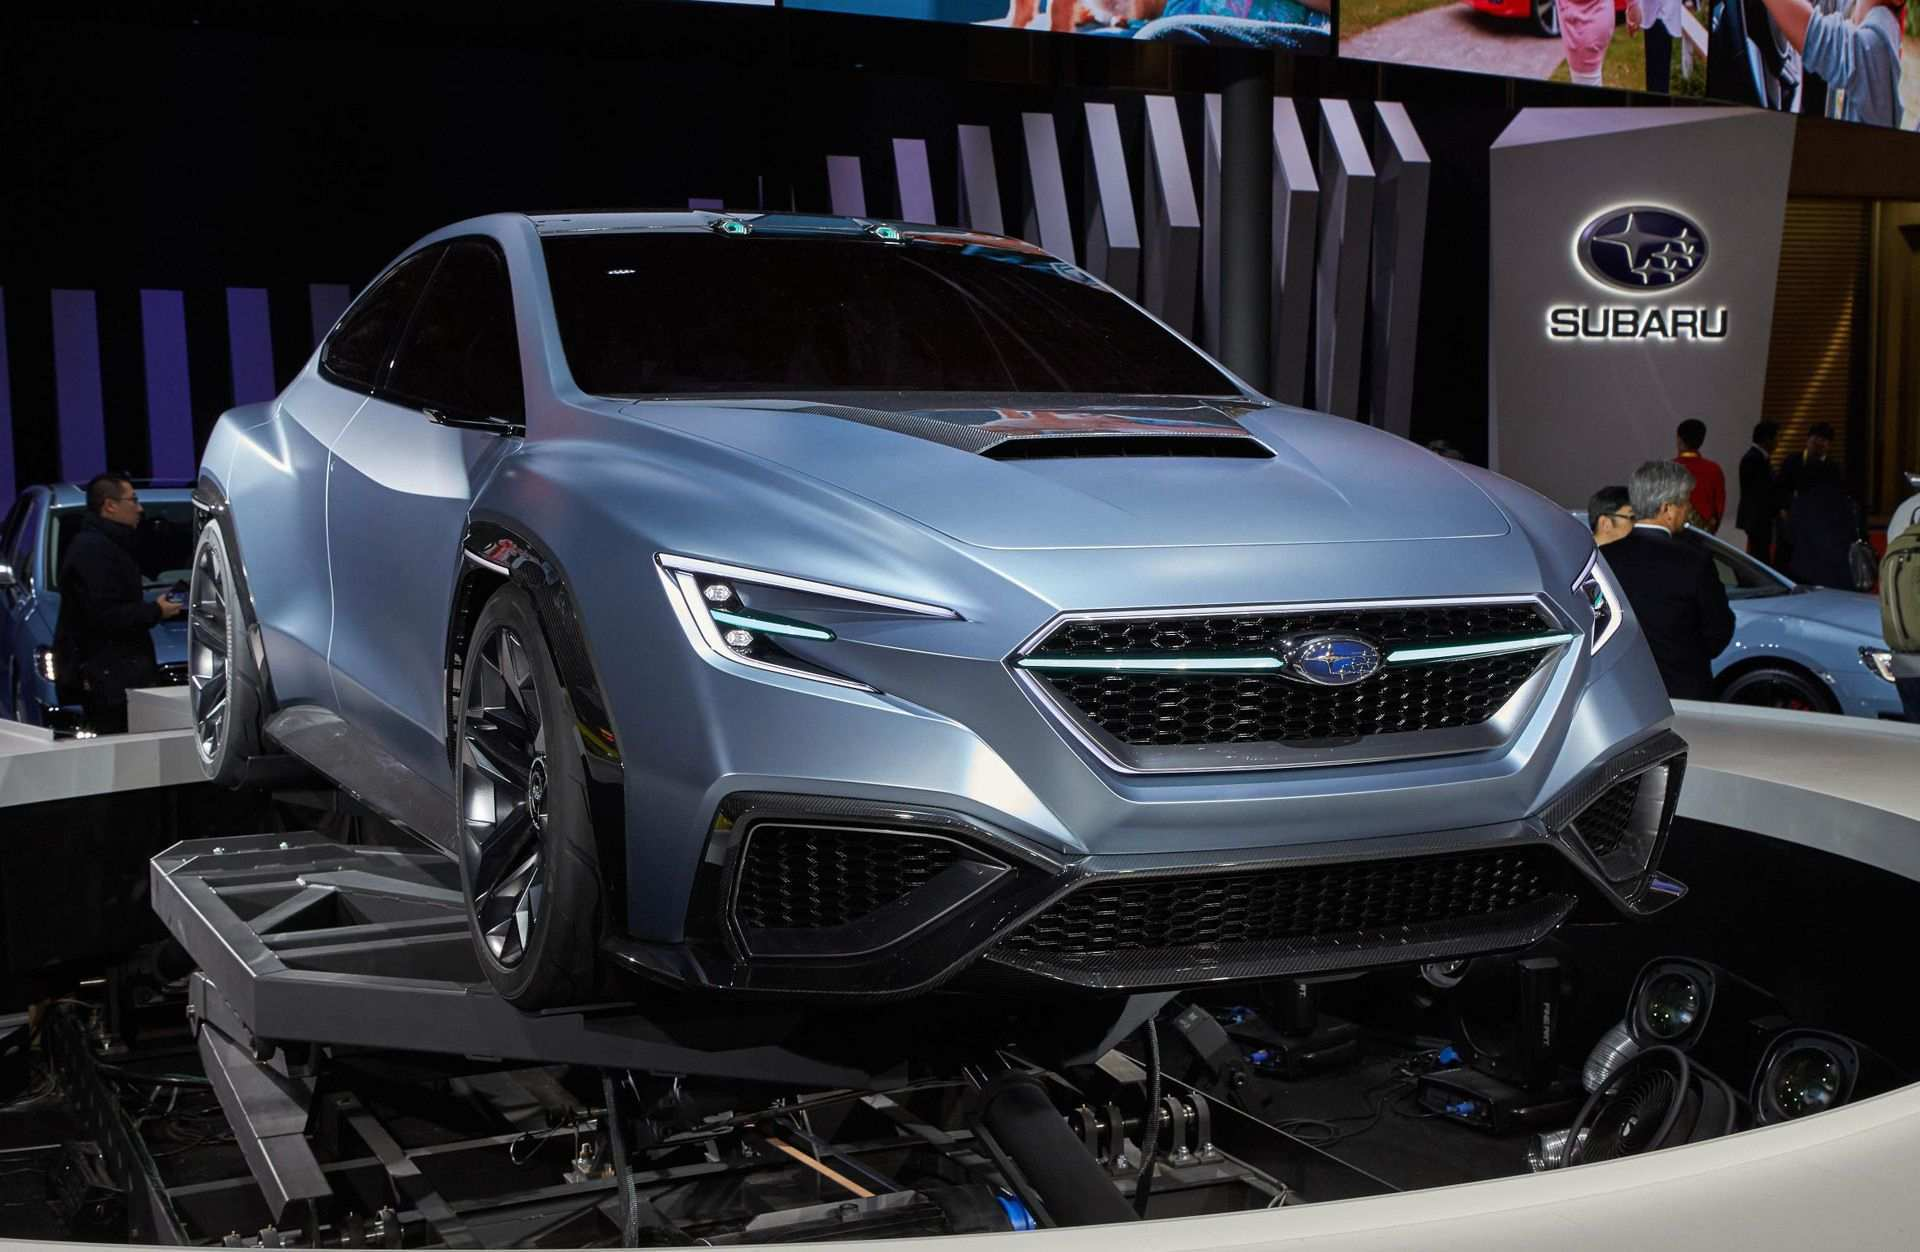 73 The Best 2019 Wrx Sti Hyperblue Price And Review